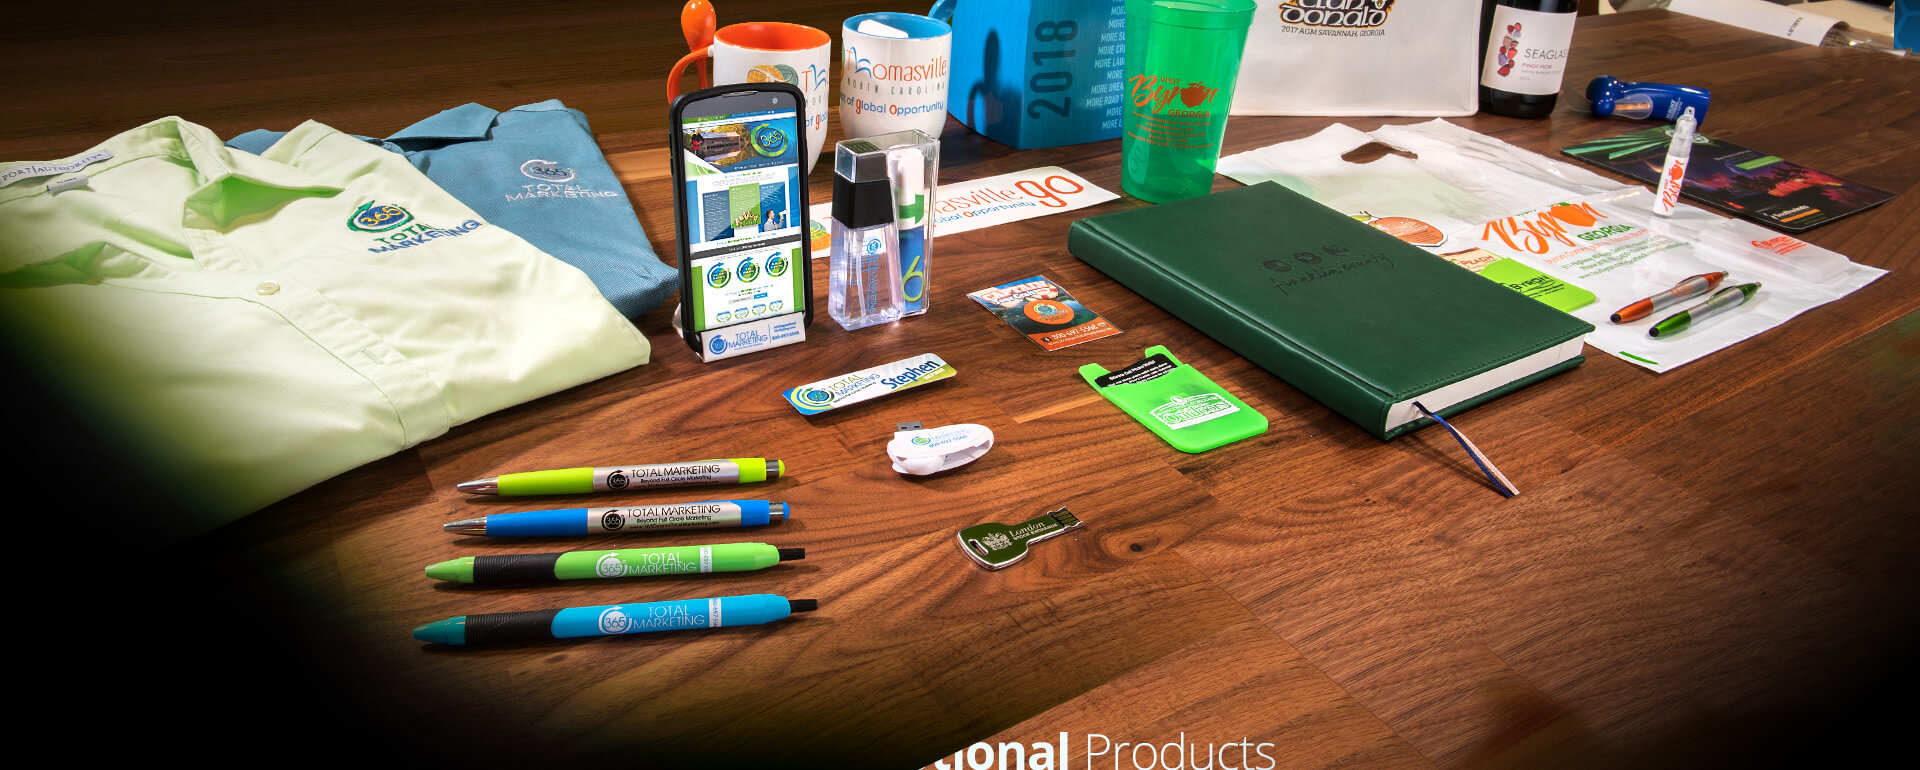 Promotional Products | 365 Degree Total Marketing